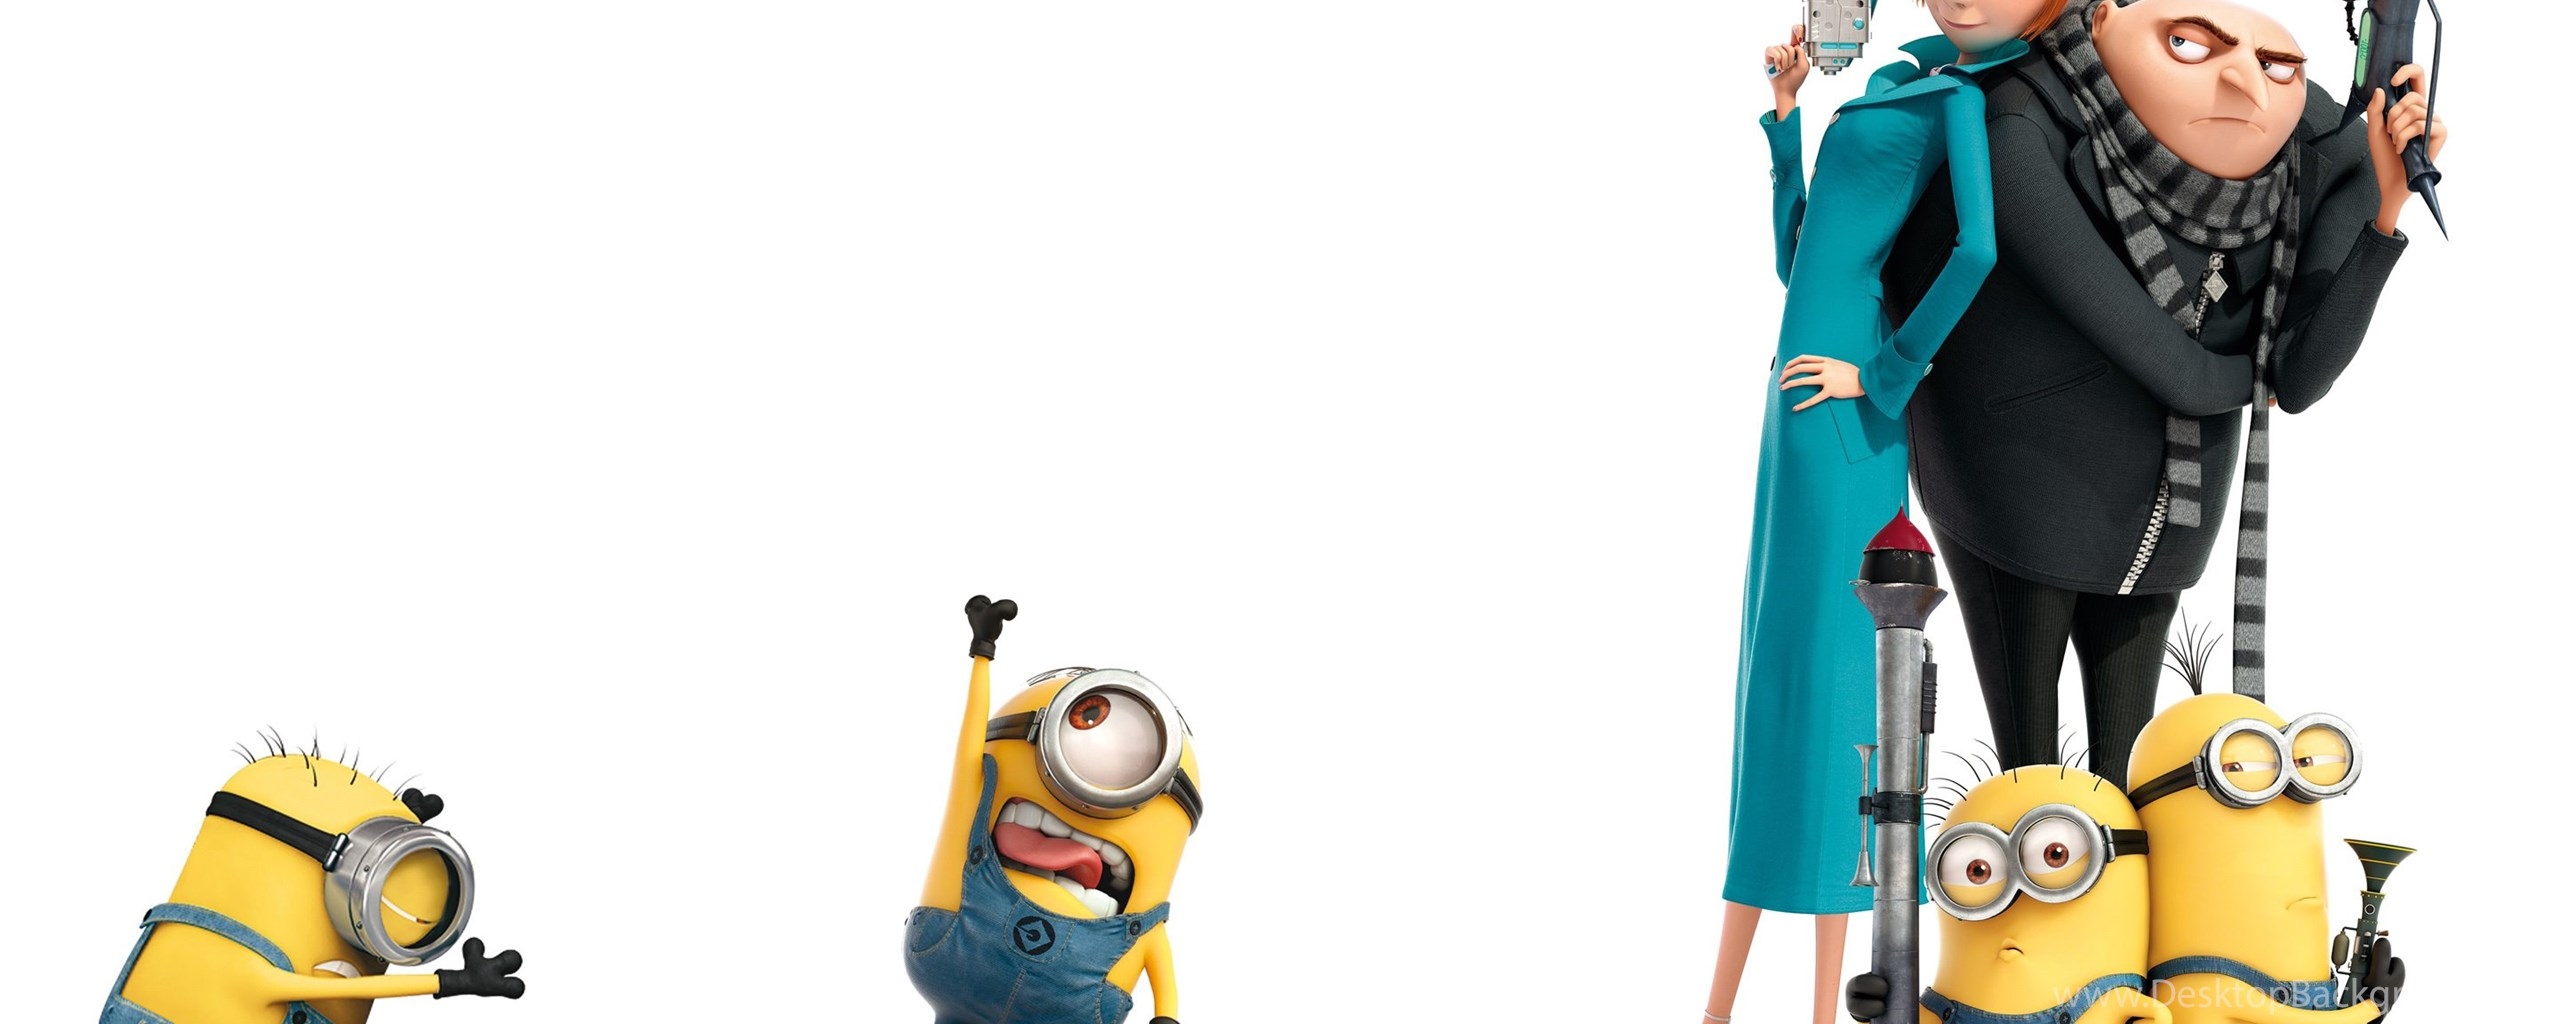 despicable me wallpaper minions 64 images - HD 2560×960